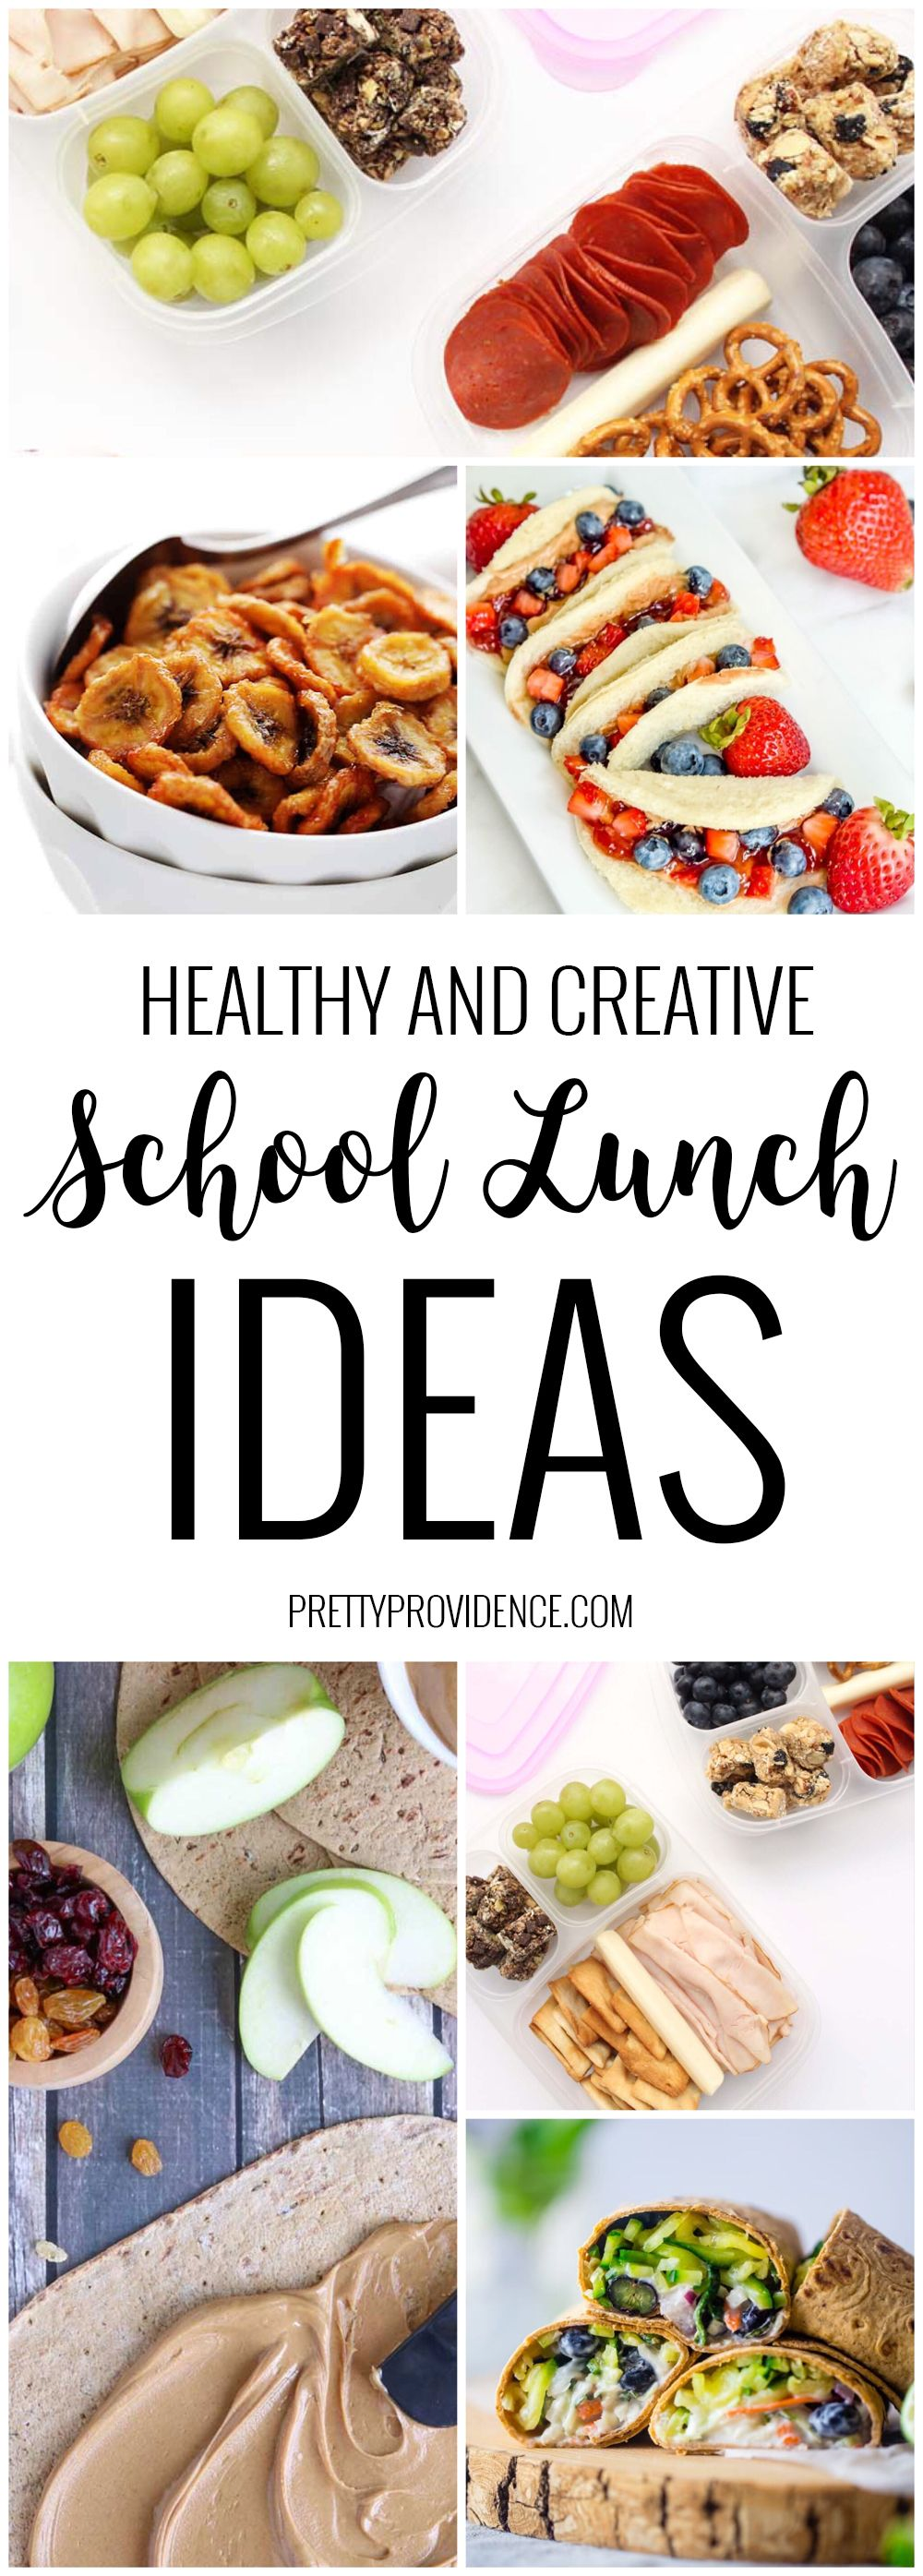 Fun, Creative and Healthy Lunch Ideas images